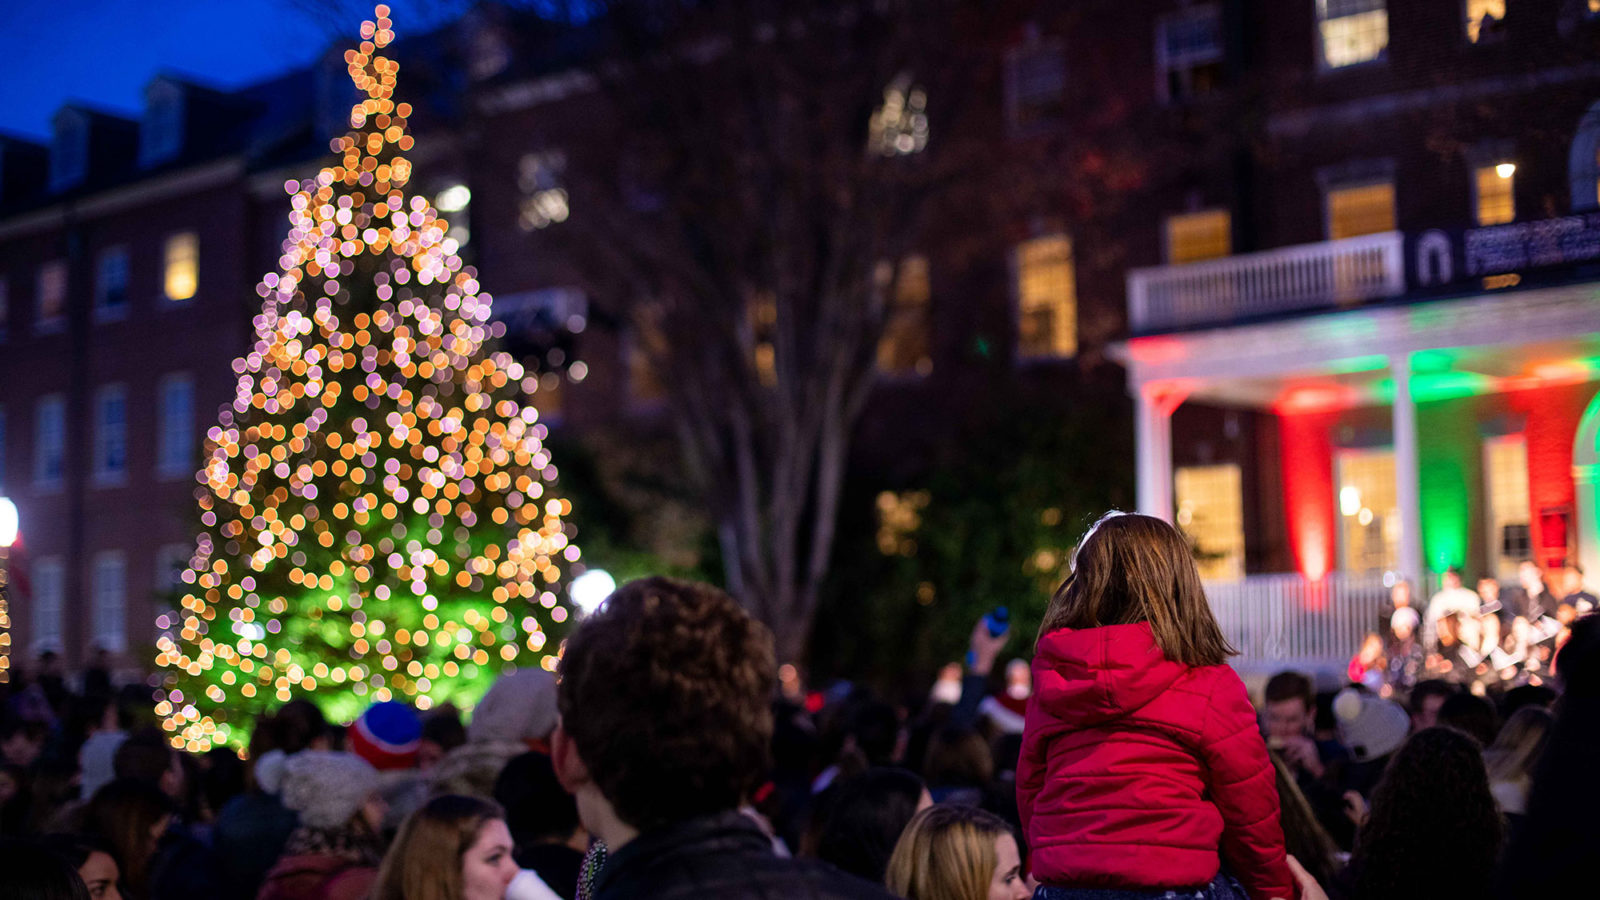 A man holds a child on his shoulders as they watch a tall Christmas tree being lit in the evening.